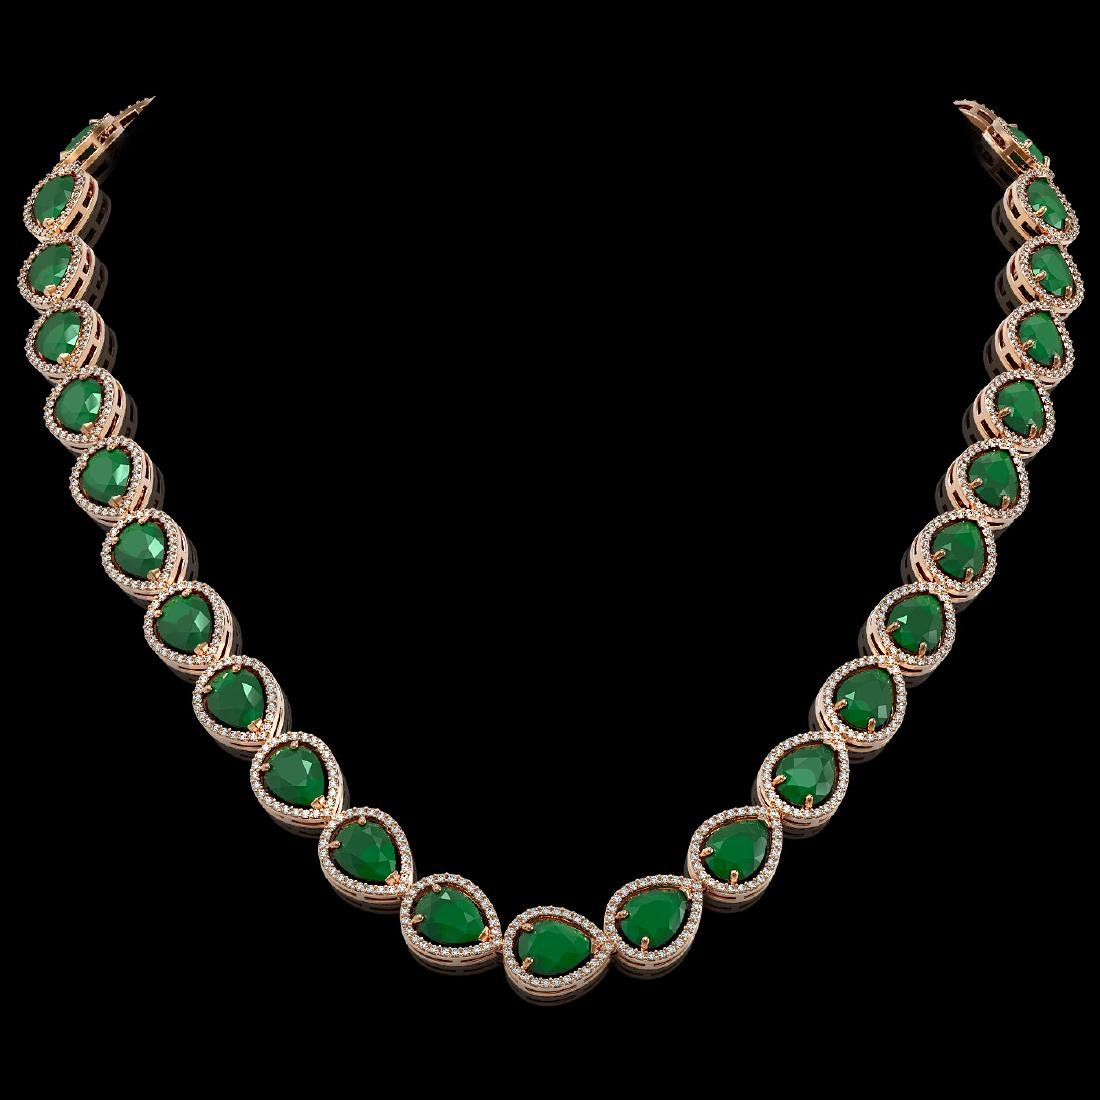 64.01 CTW Emerald & Diamond Halo Necklace 10K Rose Gold